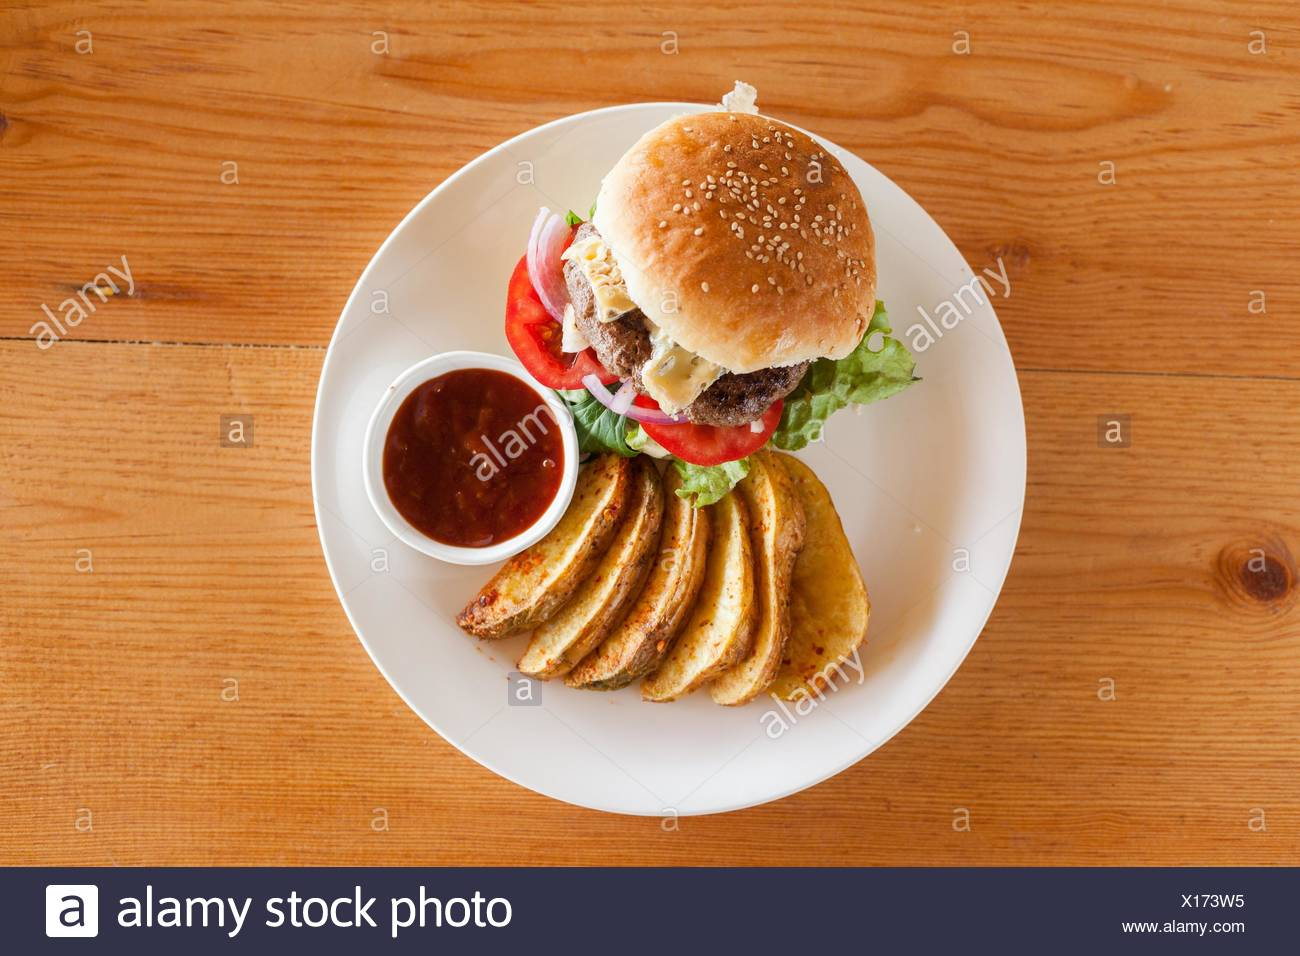 A Bleu (Blue) cheese hamburger with fries and barbecue sauce from above on a wood tabletop. Stock Photo